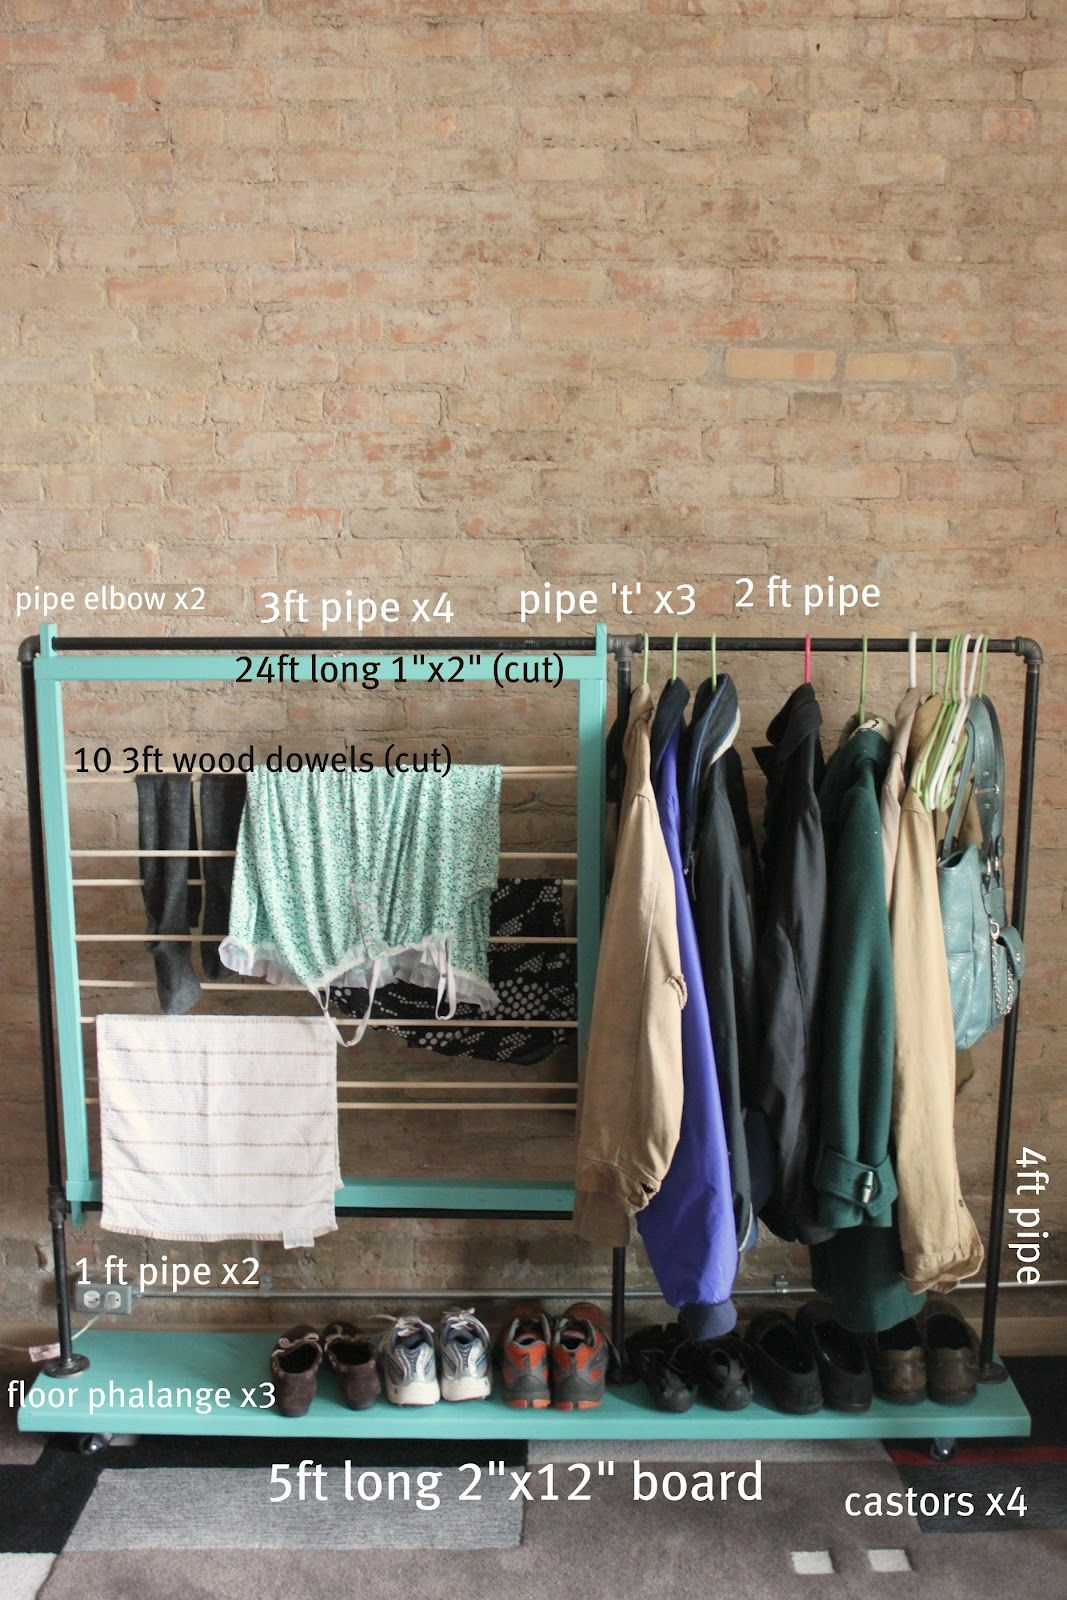 Split The Lark Downsizing Days Maximizing Your Closet Space - Cool diy coat rack for maximizing closet space